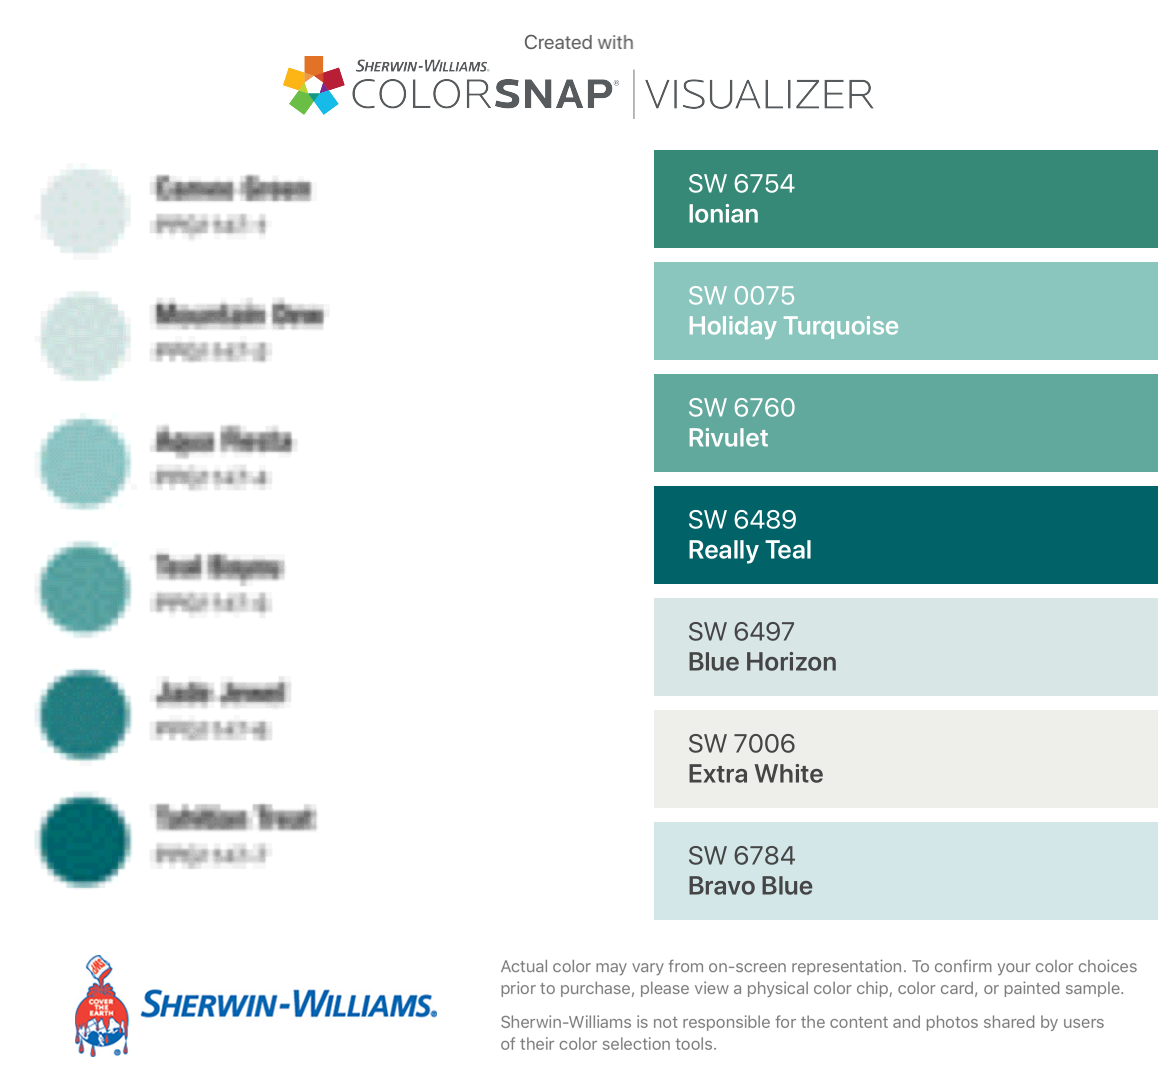 Matching Glidden Colors With Colorsnap Visualizer For Iphone By Sherwin Williams Ion Sherwin Williams Color Palette Sherwin Williams Colors Teal Paint Colors